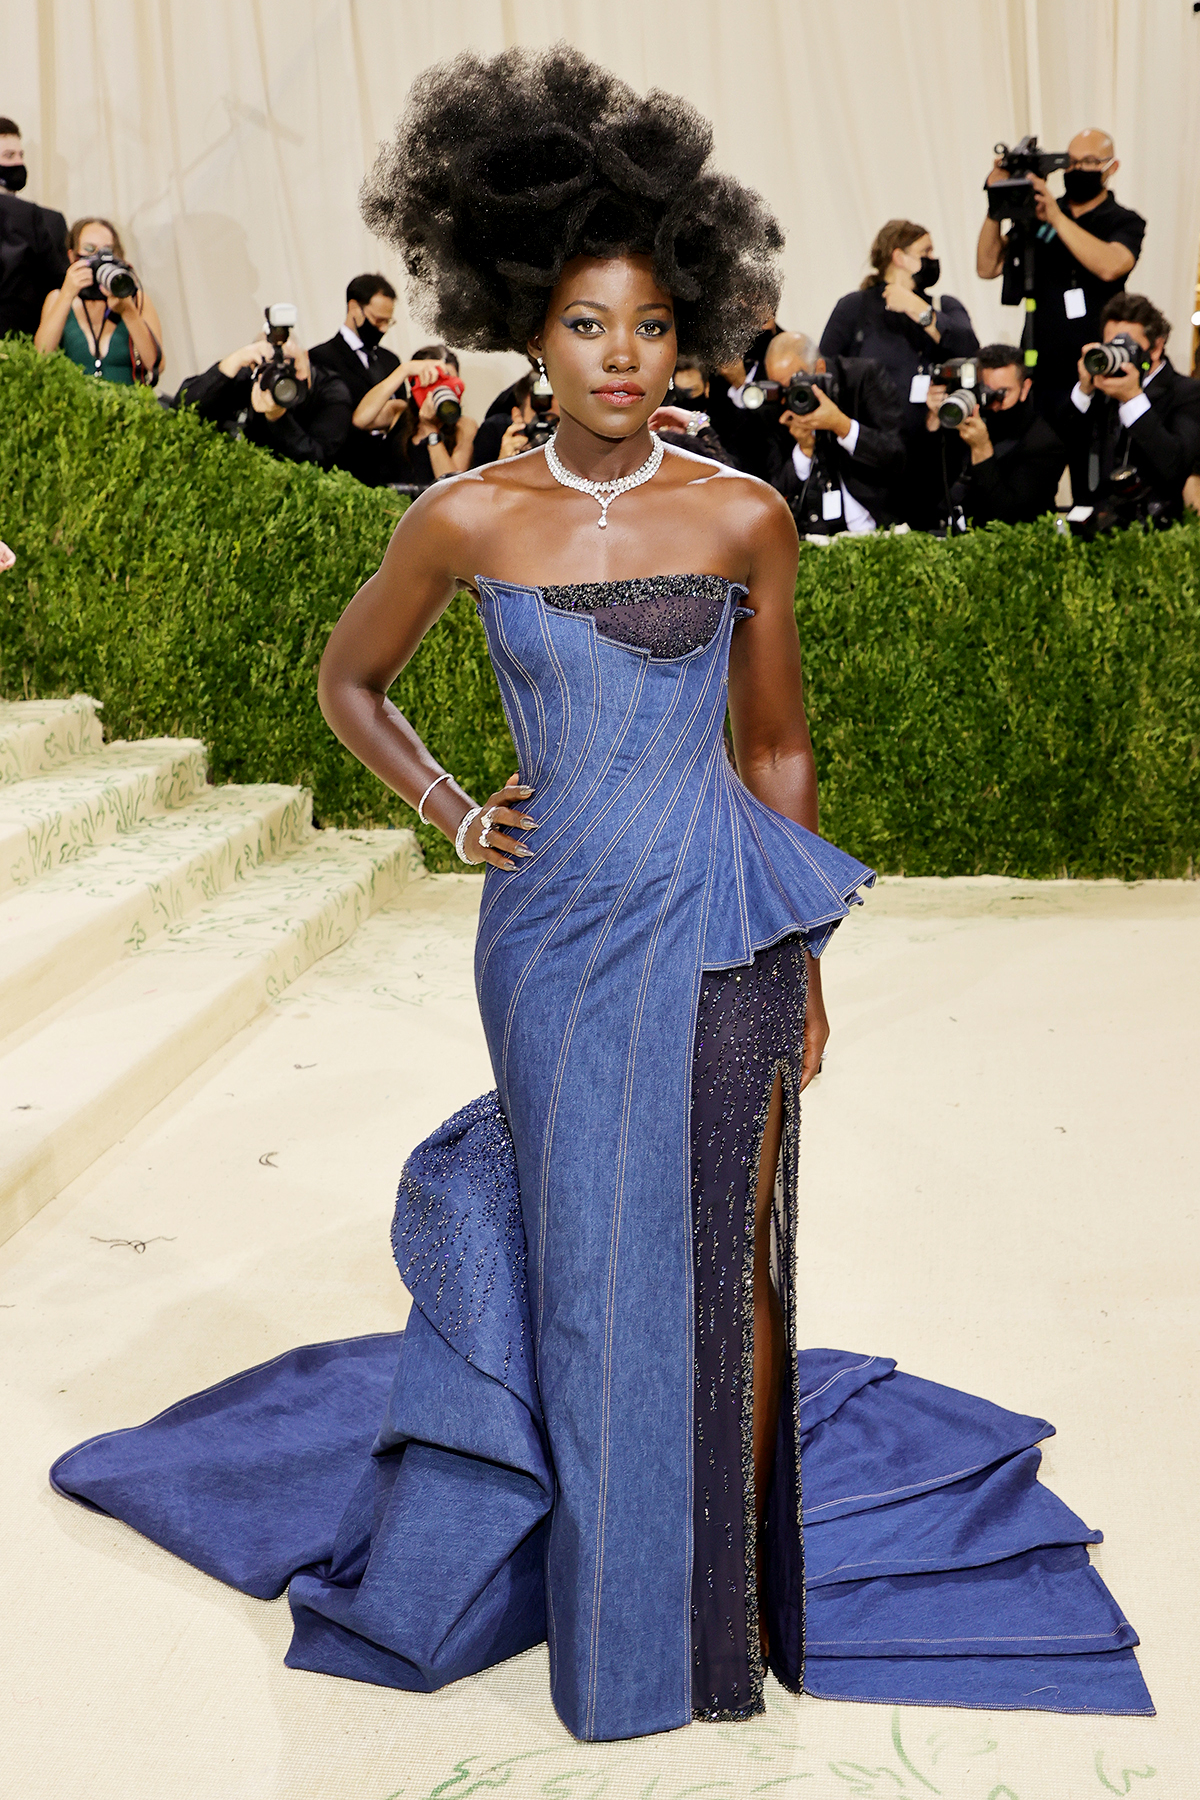 Lupita Nyong'o attends The 2021 Met Gala Celebrating In America: A Lexicon Of Fashion at Metropolitan Museum of Art on September 13, 2021